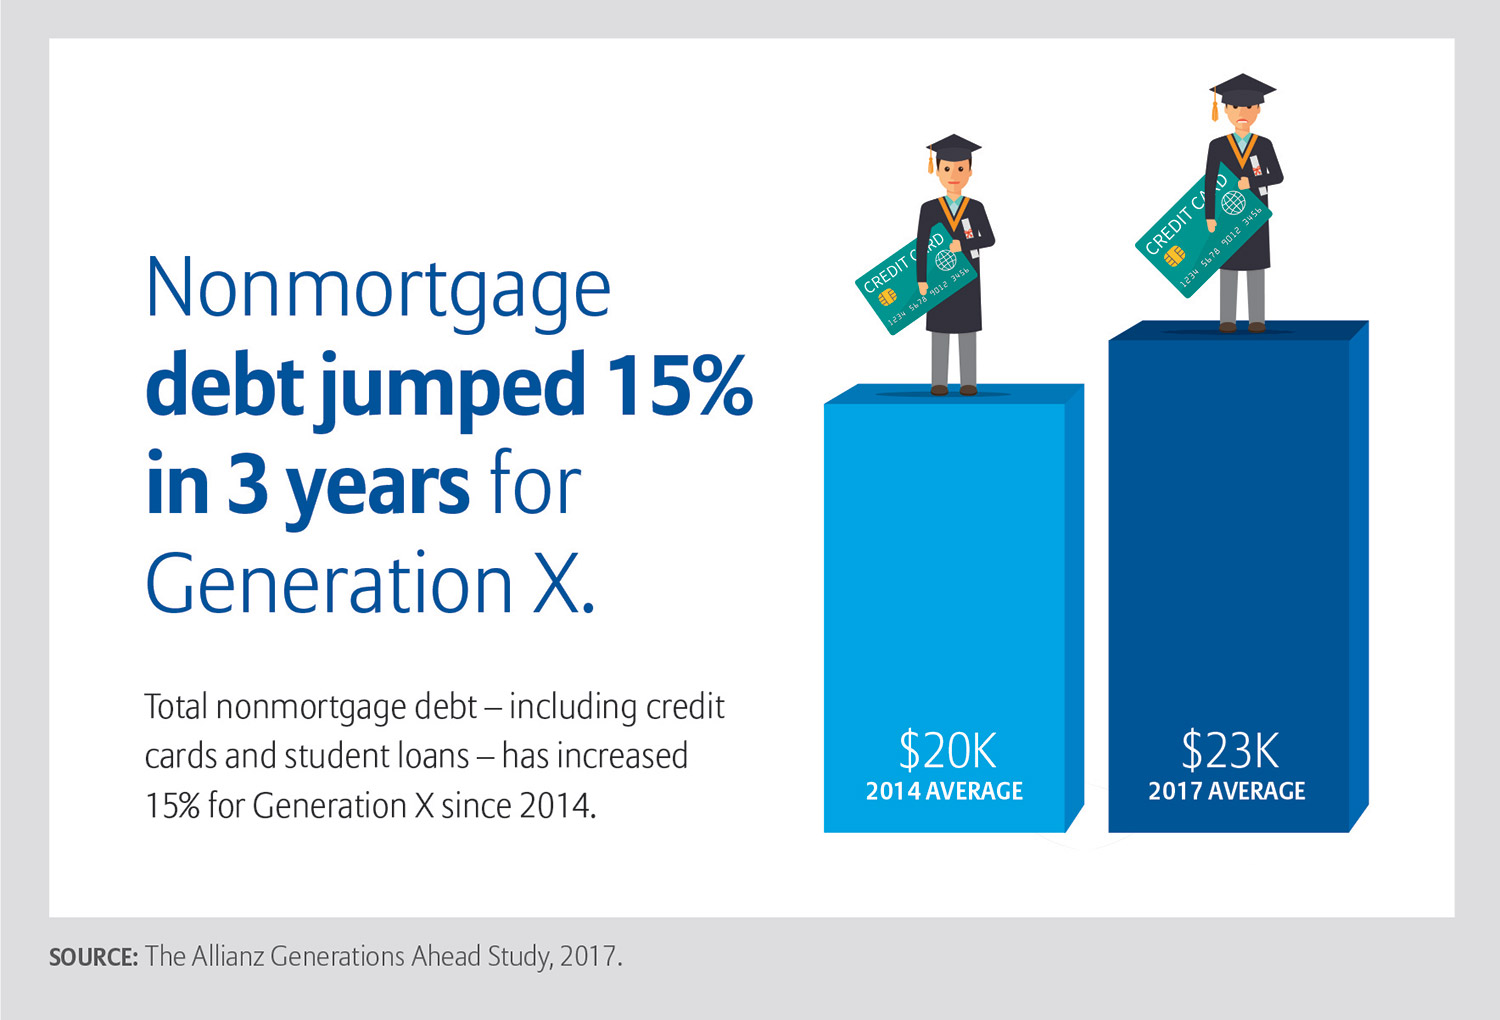 Chart showing that nonmortgage debt jumped 15 percent in 3 years for Generation X